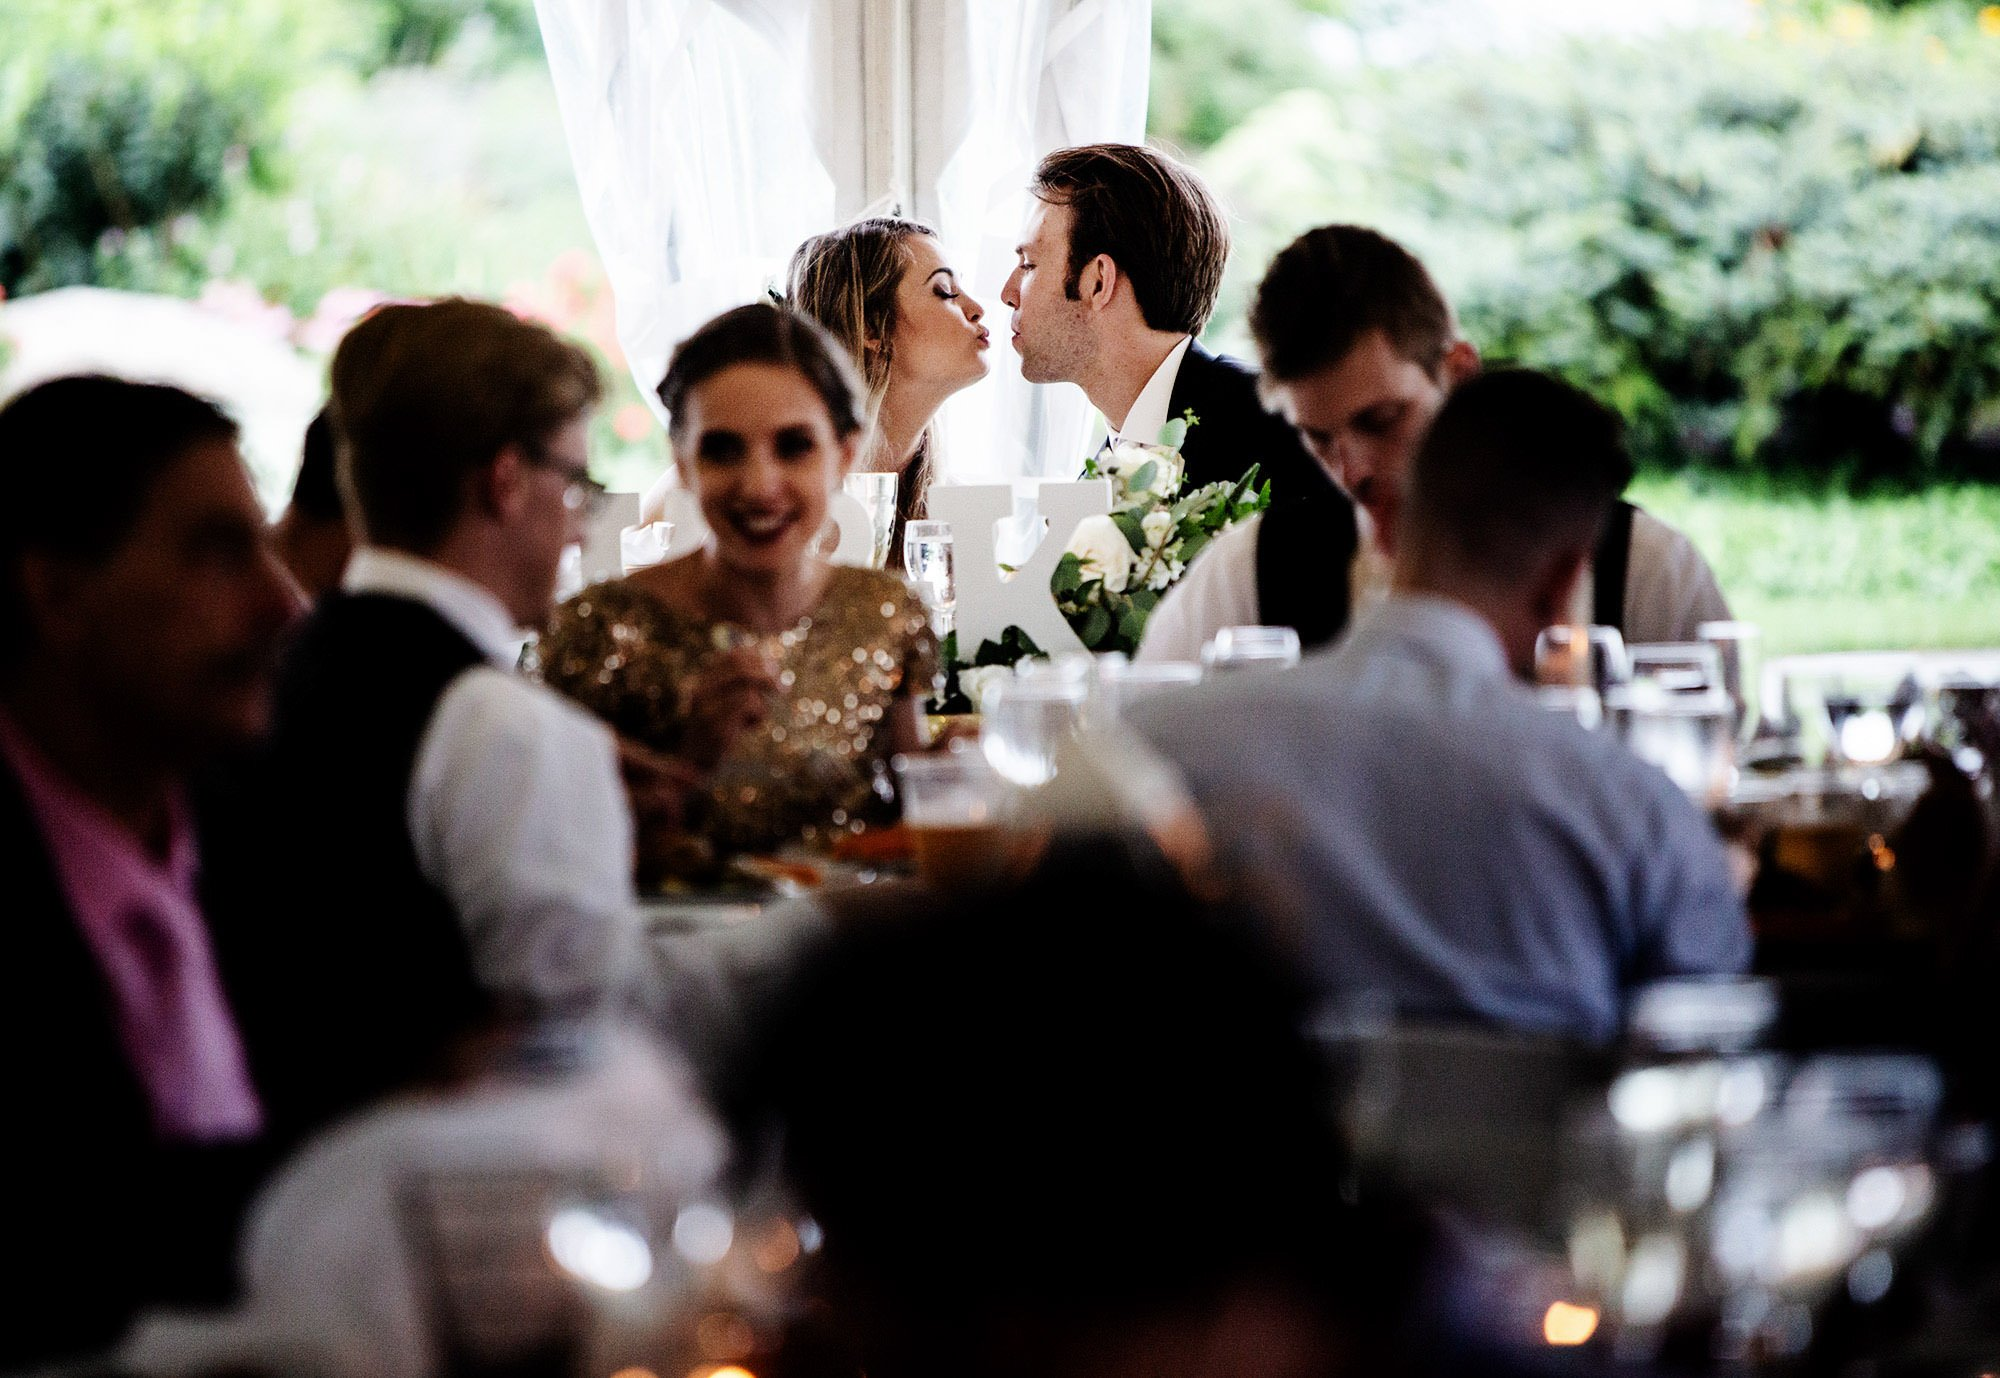 The bride and groom kiss during dinner on their White Cliffs Country Club wedding day.